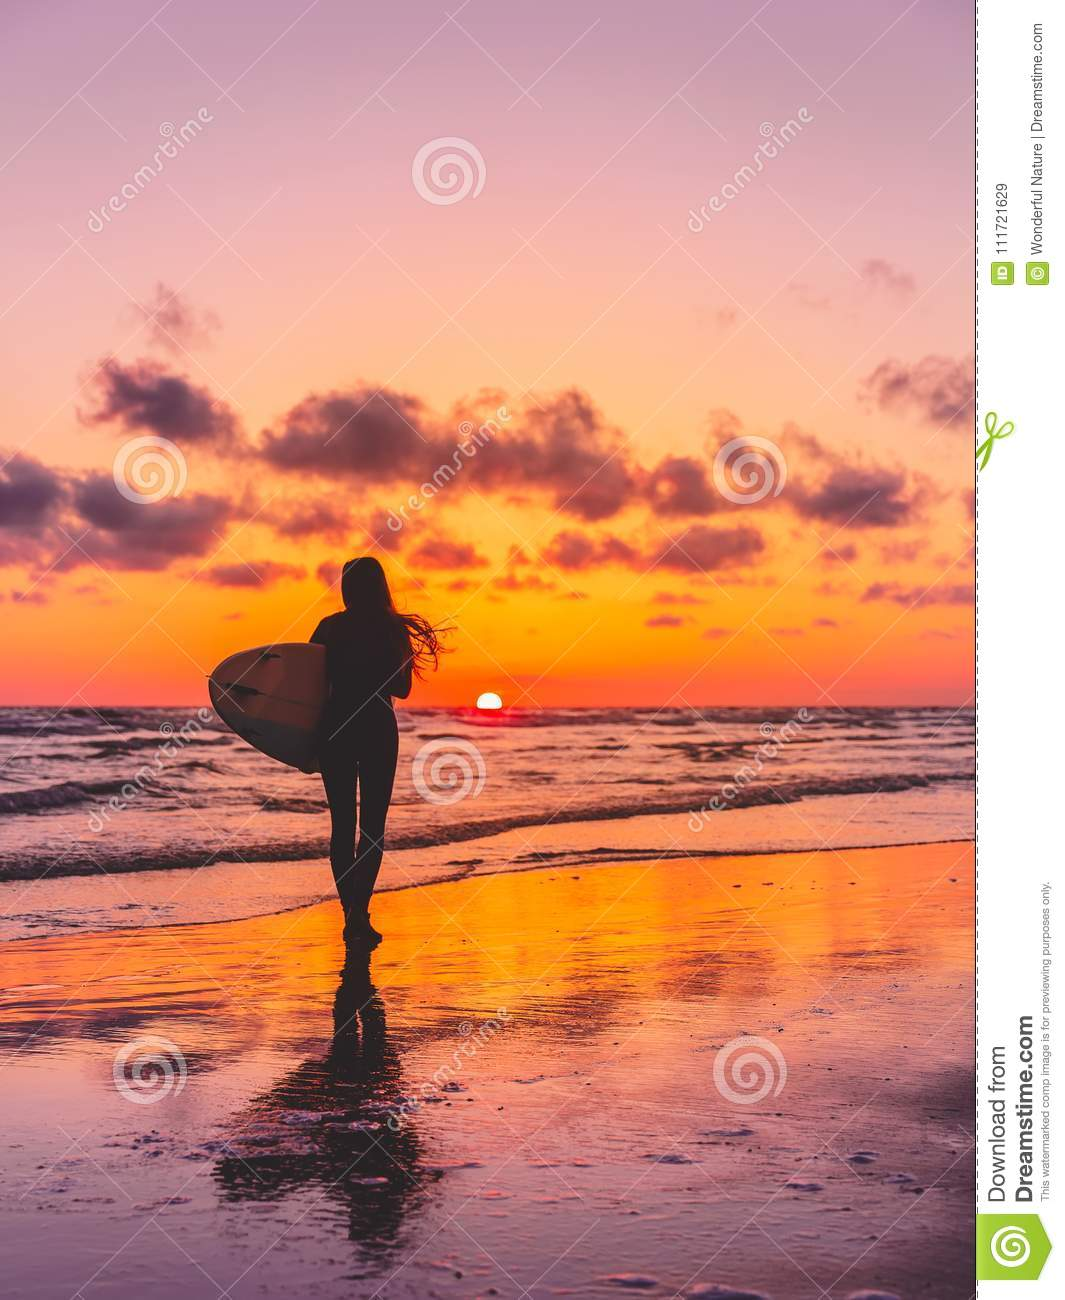 Silhouette Of The Surfer Girl With Surfboard On A Beach At ...